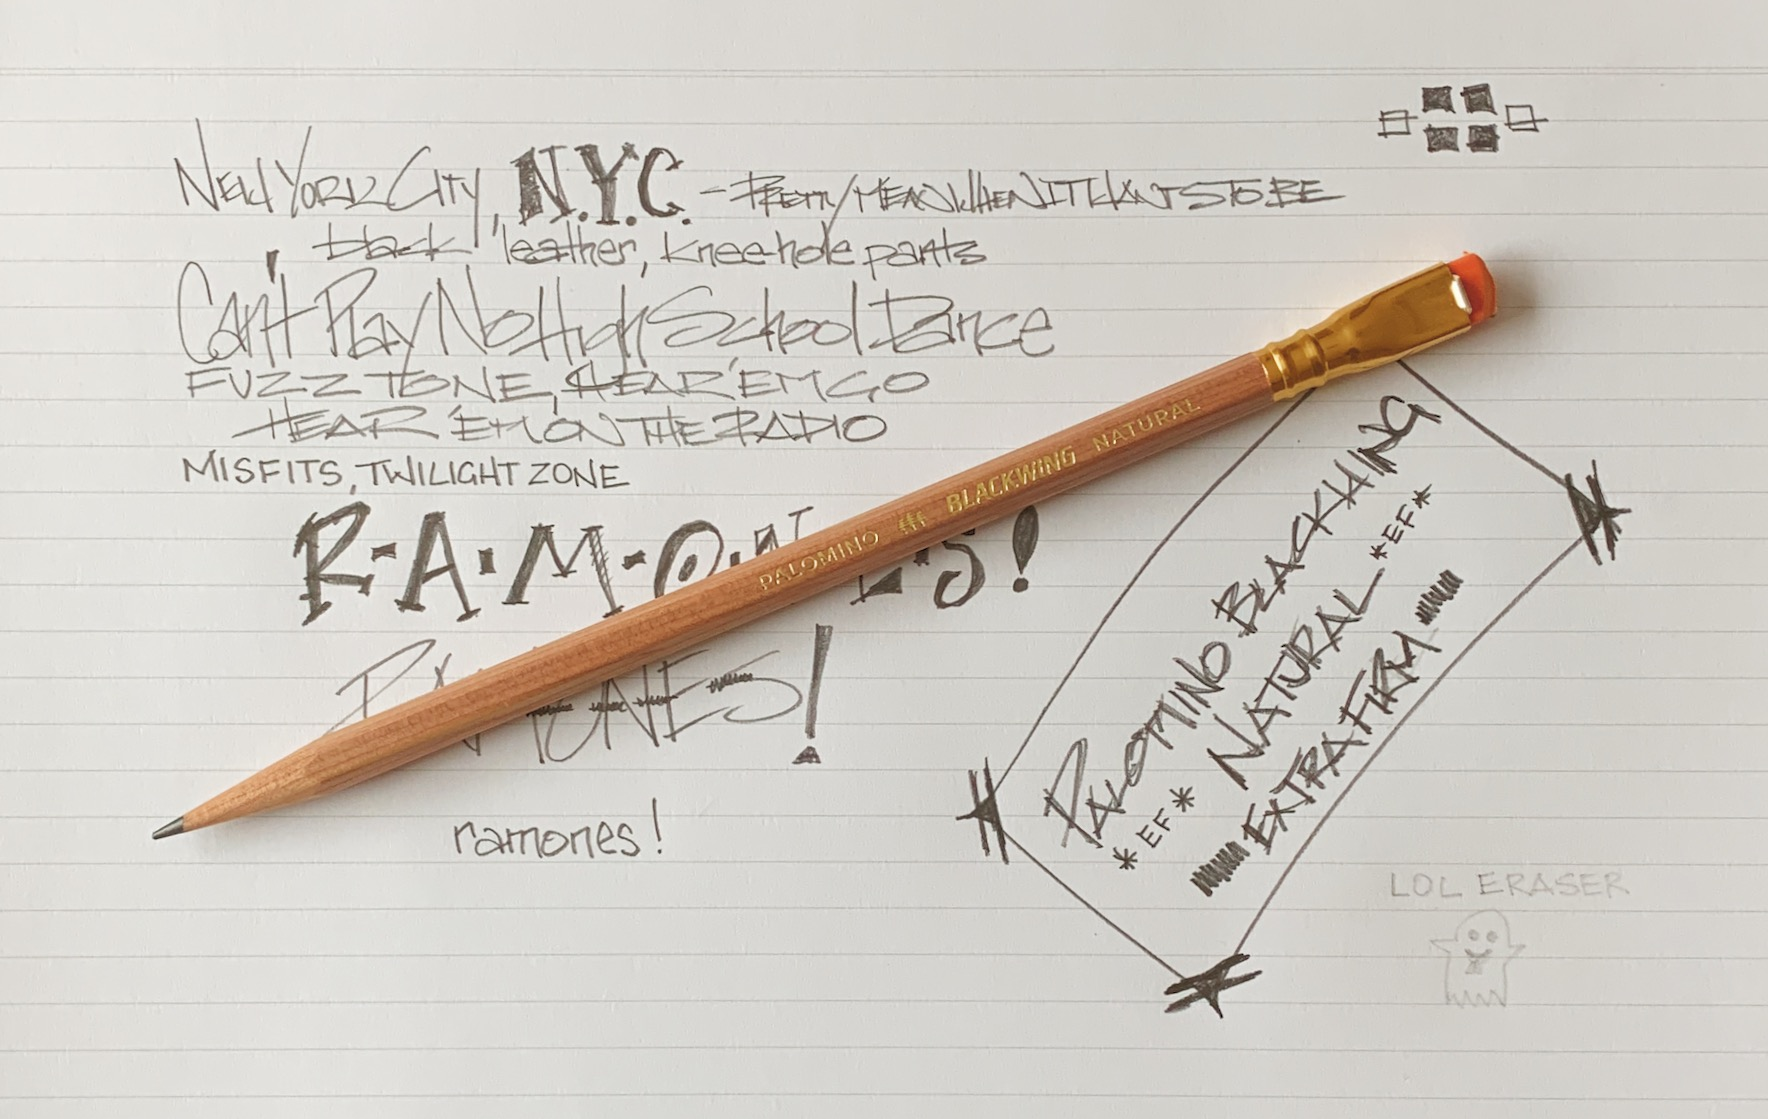 Palomino Blackwing Natural Page